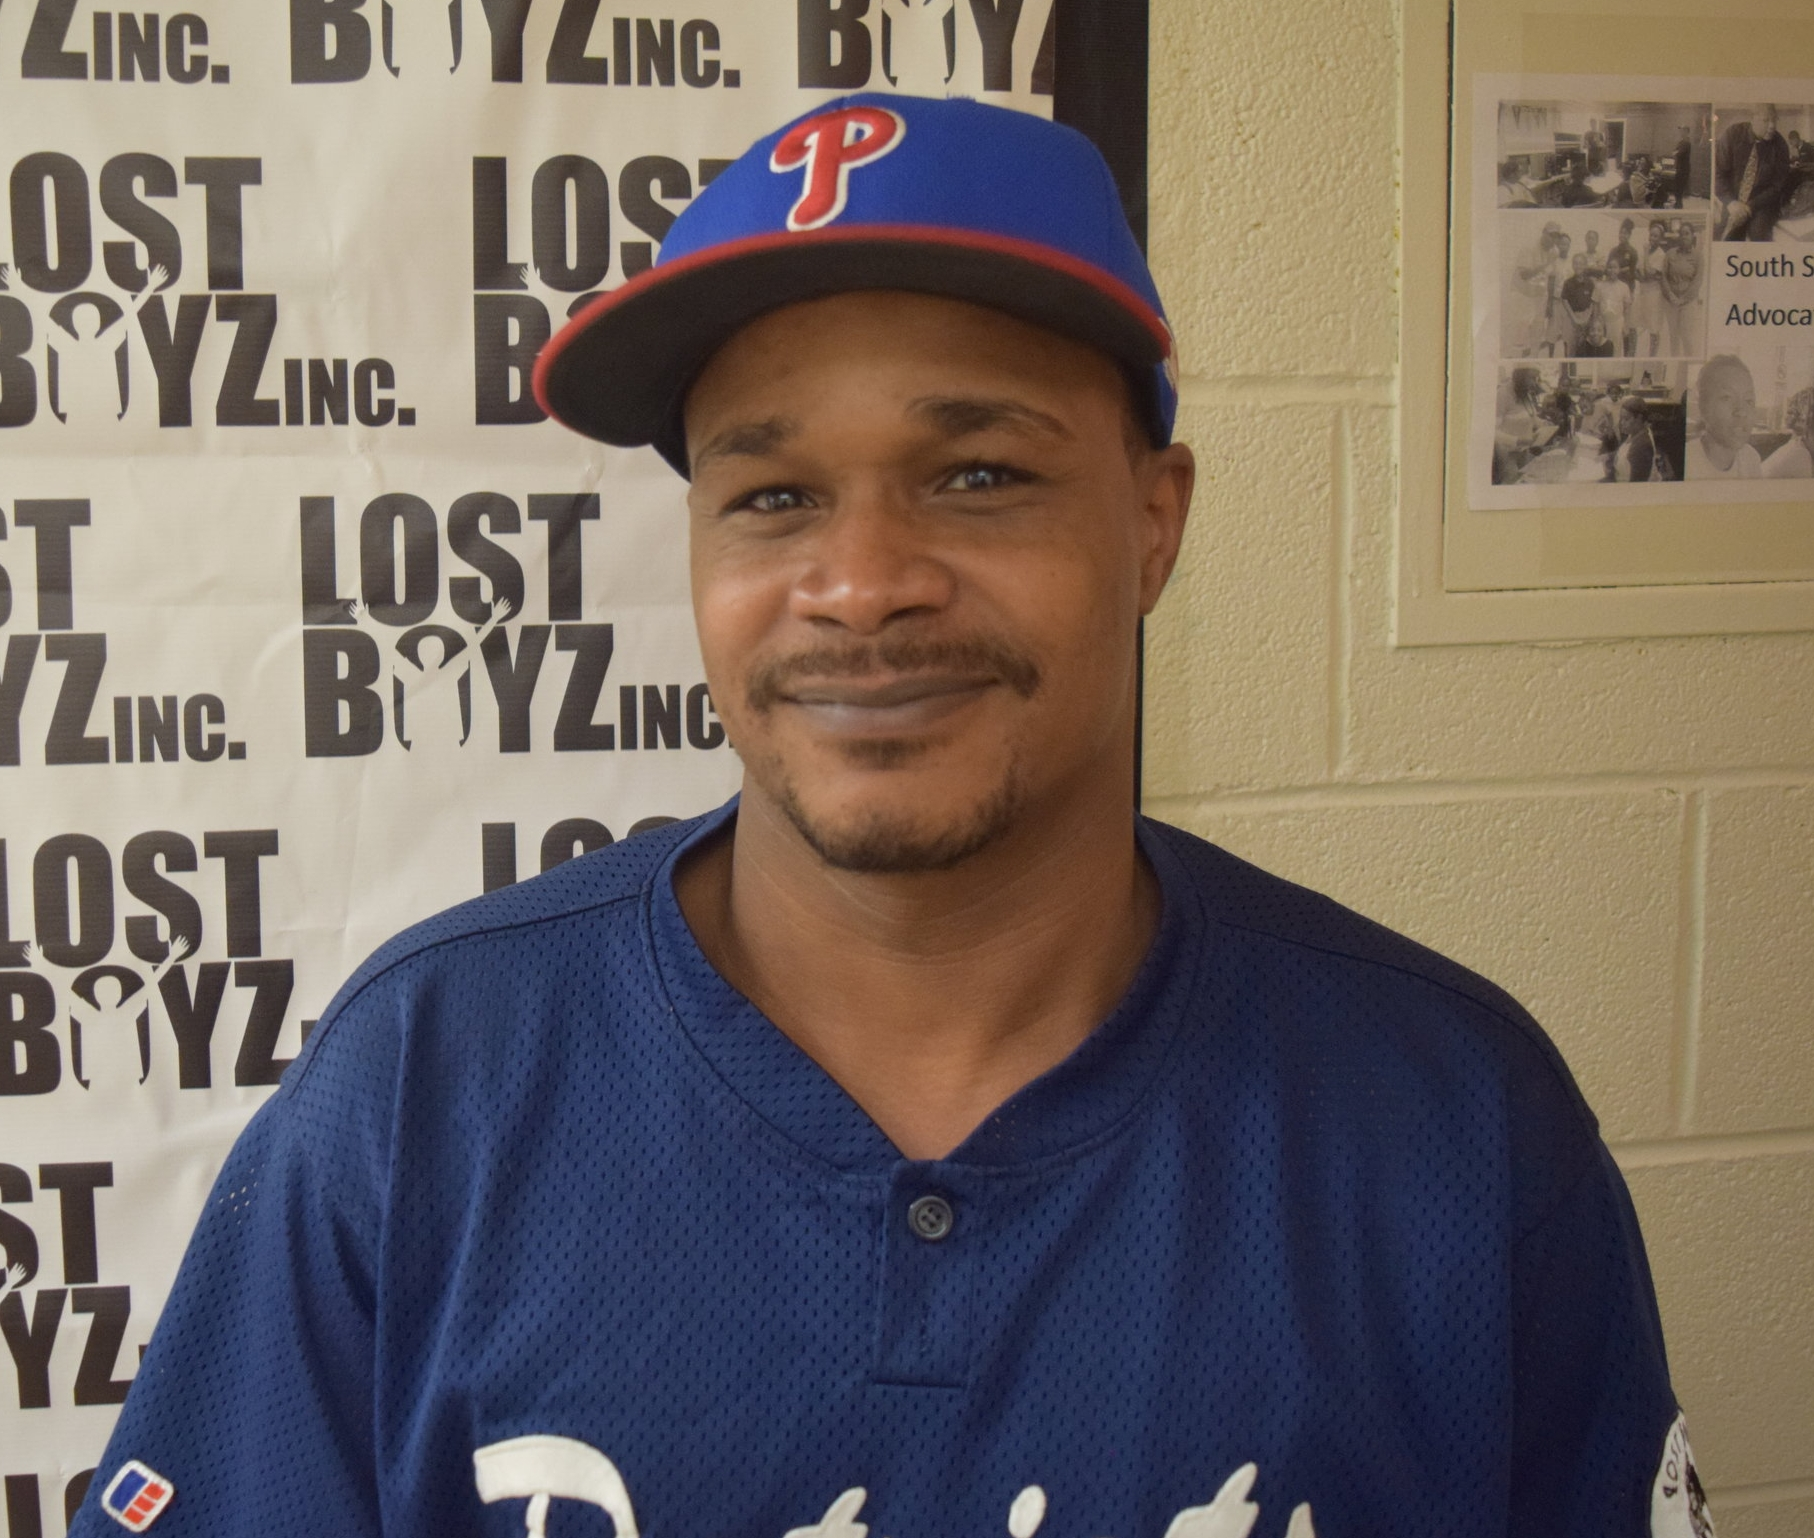 "LaVonte Stewart   Executive Director, Lost Boyz Inc.   ""We started LostBoyz in 2008, officially in 2009 when we became a non-for-profit 501c3. As an organization we started in response to the spike in violence that we saw in the community among youth. I had already been coaching Little League for the local league that had been defunct for about two and a half decades. It was the one that my peers and I grew up in in this community. So when it folded I was really disappointed and I was stuck with this group of about 15 boys, [ages] 11 to 12. [While] I was telling them that things were coming to an end, and I was going to help them transition into another league, to one of our league mates in the district like Jackie Robinson West or South Side, we experienced what I considered to be a traumatic incident. It was middle of the day in the summertime on a weekday. While I was talking to them, we see two guys pursuing another guy across the field and they have guns. I'm kind of old school, and I hit the dirt. The kids are kind of laughing, talking, taking bets on if they were going to get the guy. At that moment it really hit me like a ton of bricks how desensitized to the violence the kids had become. There was just this mixture of emotions for me. As an adult who was working with them, there was a protective factor and this 'Oh my God. Maybe this is more than I can deal with'. As a person growing up in the community and having lived that life, there was also a sense of guilt that I had overall contributed to this transformation of our subculture. So I wanted to contribute to changing that narrative or that paradigm of what was happening. So from there, I was thinking about it, and that's where the name came from. We had lost these kids. Where are all the adults? The people standing in the gap for the kids? We're lost spiritually, mentally, emotionally. It was less of an indictment on the kids and more of an indictment on the adults in the community. So that's how it came about. We've been going pretty strong since then. We started with 15 boys. We're now up to a total of roughly 130 kids. Of that 130, about 14 of them are teenagers who have been in the program since they were younger and are now too old to play. We created a second program for them which is a continuation of service called Successful Youth Leaders, where they act as youth workers. The rest of the kids are playing baseball or softball. This is our fourth year incorporating fast-pitch softball for the girls. We saw these same negative behavior patterns with girls that often revolved around violence and interpersonal conflict and in some cases it was worse than with the boys. It was an easy decision to bring the girls in…South Shore itself is an absolutely beautiful and wonderful neighborhood. It has a very rich history. We have so many jewels and assets in this community. It's a transportation hub. It's a really wonderful mix of wealth that's in this community. It's what makes it so interesting. You could be on one block , and it's a moderate block, and you could go over two blocks, and you'll run into baby mansions, and then you'll go over two more blocks and it's dirt poor. It's a really interesting mix of income levels. We have really notable people who come from this community. It's very resource rich in one aspect. It's a community that's now trying to rebound thanks to people like Yvette Moyo (publisher of  South Shore Current Magazine ) and posthumous Henry English, founder and leader of the Black United Fund, and Victoria Brady (founder of Ray of Hope Center for the Arts) who do wonderful things for the community and are trying to resurrect it."""